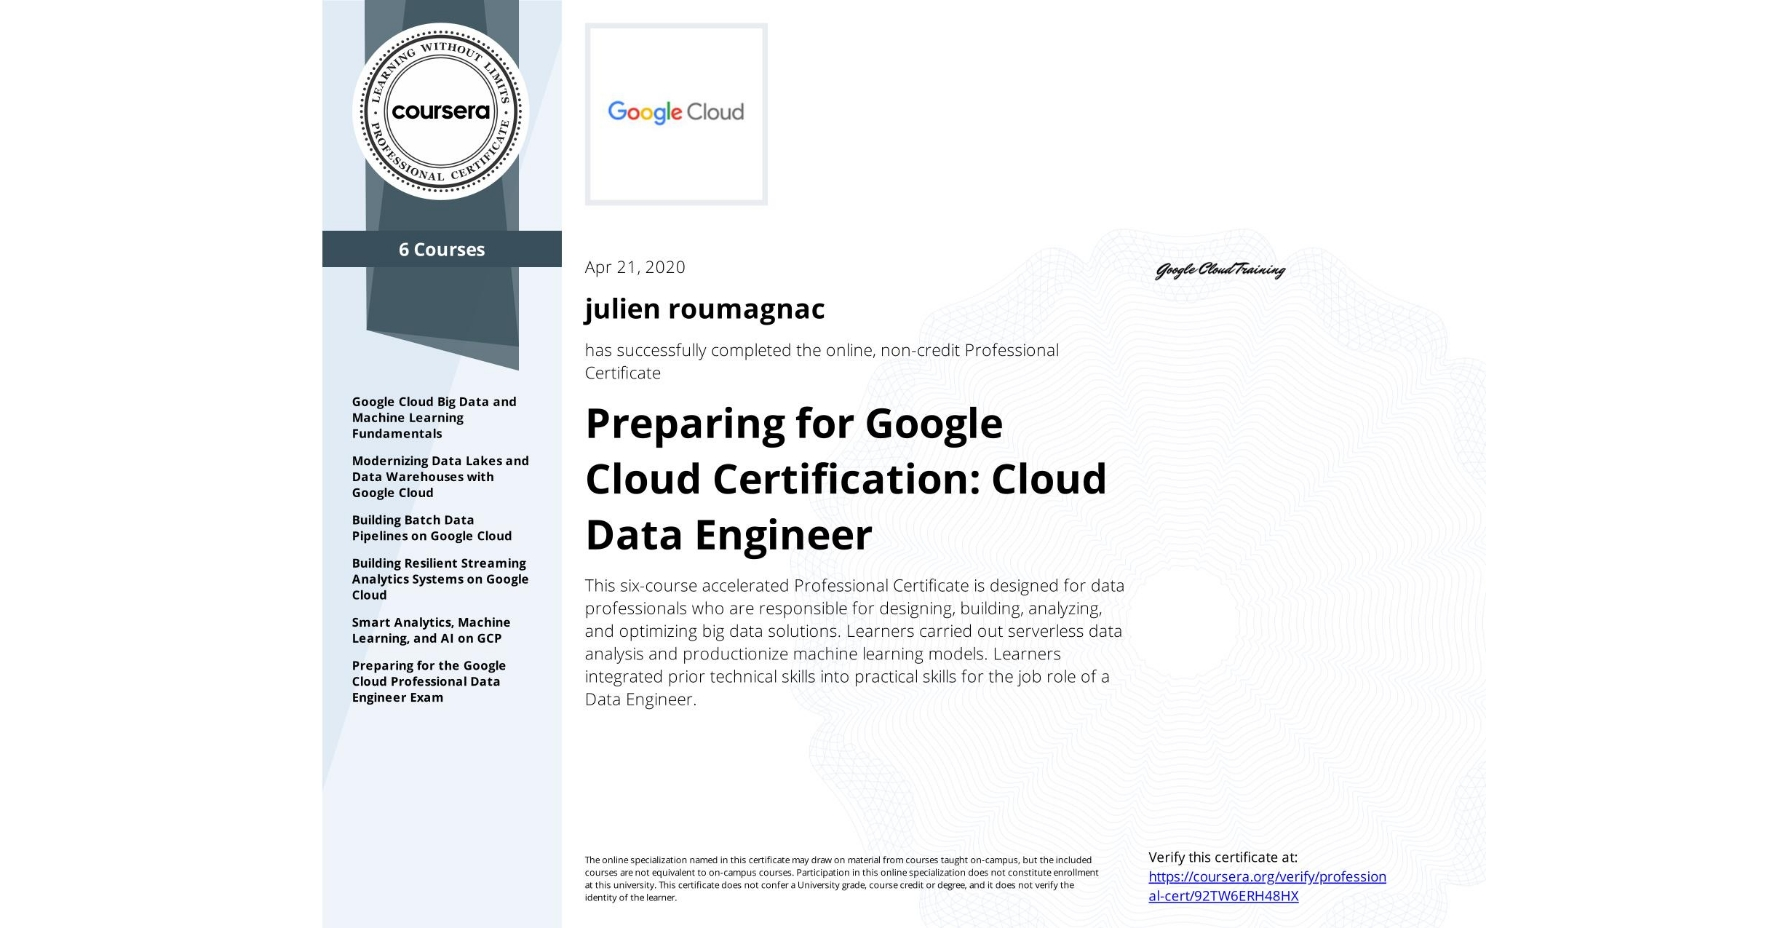 View certificate for julien roumagnac, Data Engineering with Google Cloud, offered through Coursera. This six-course accelerated Professional Certificate is designed for data professionals who are responsible for designing, building, analyzing, and optimizing big data solutions. Learners carried out serverless data analysis and productionize machine learning models.  Learners integrated prior technical skills into practical skills for the job role of a Data Engineer.